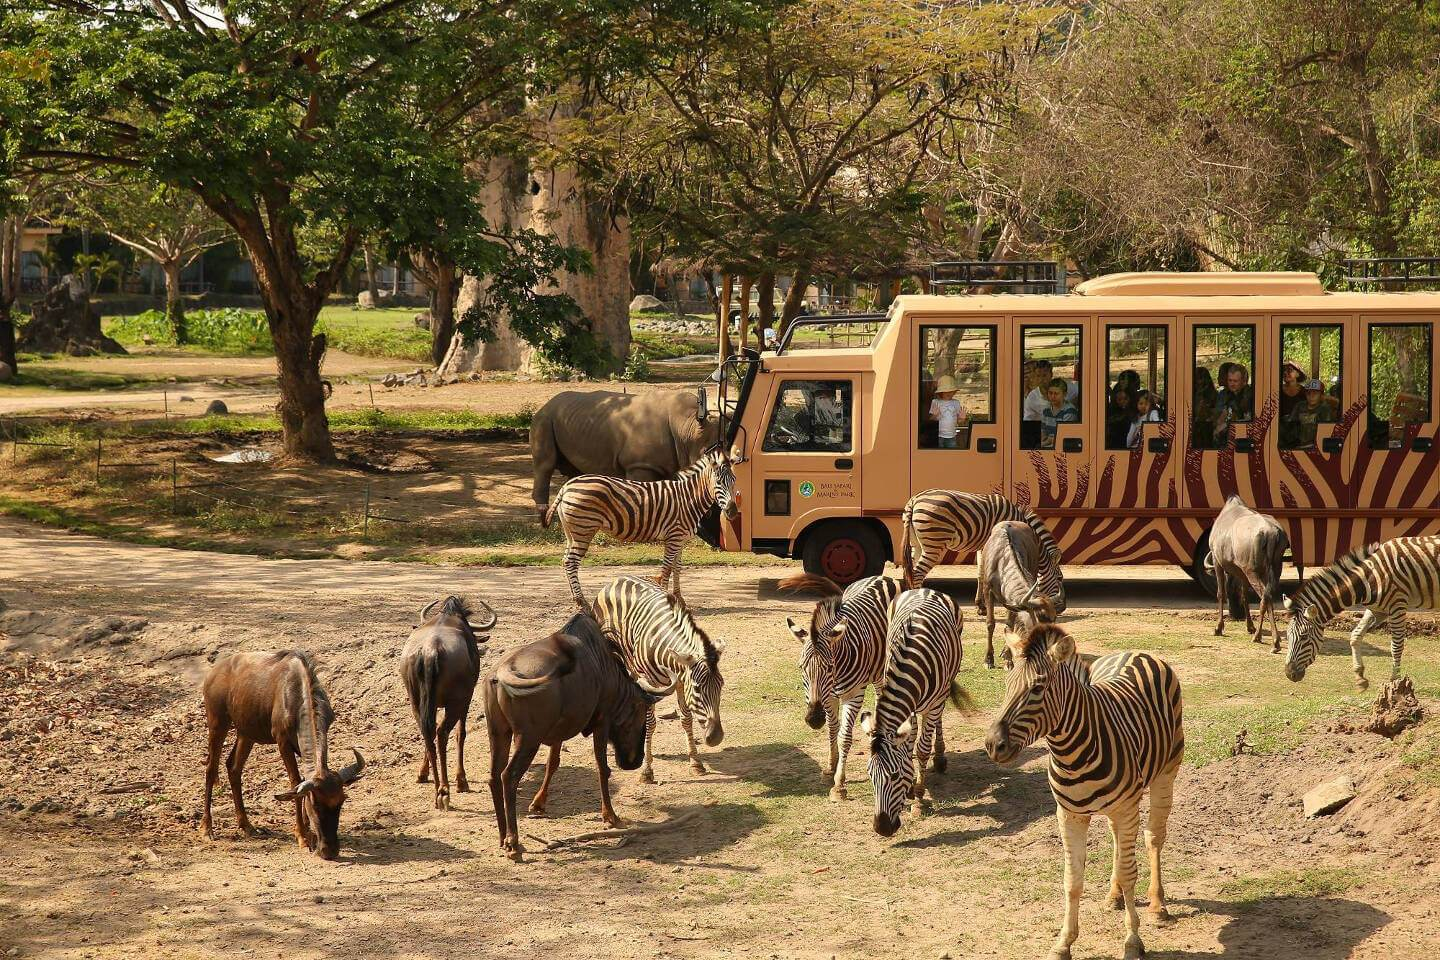 Bali Safari Park Book Direct And Save 10